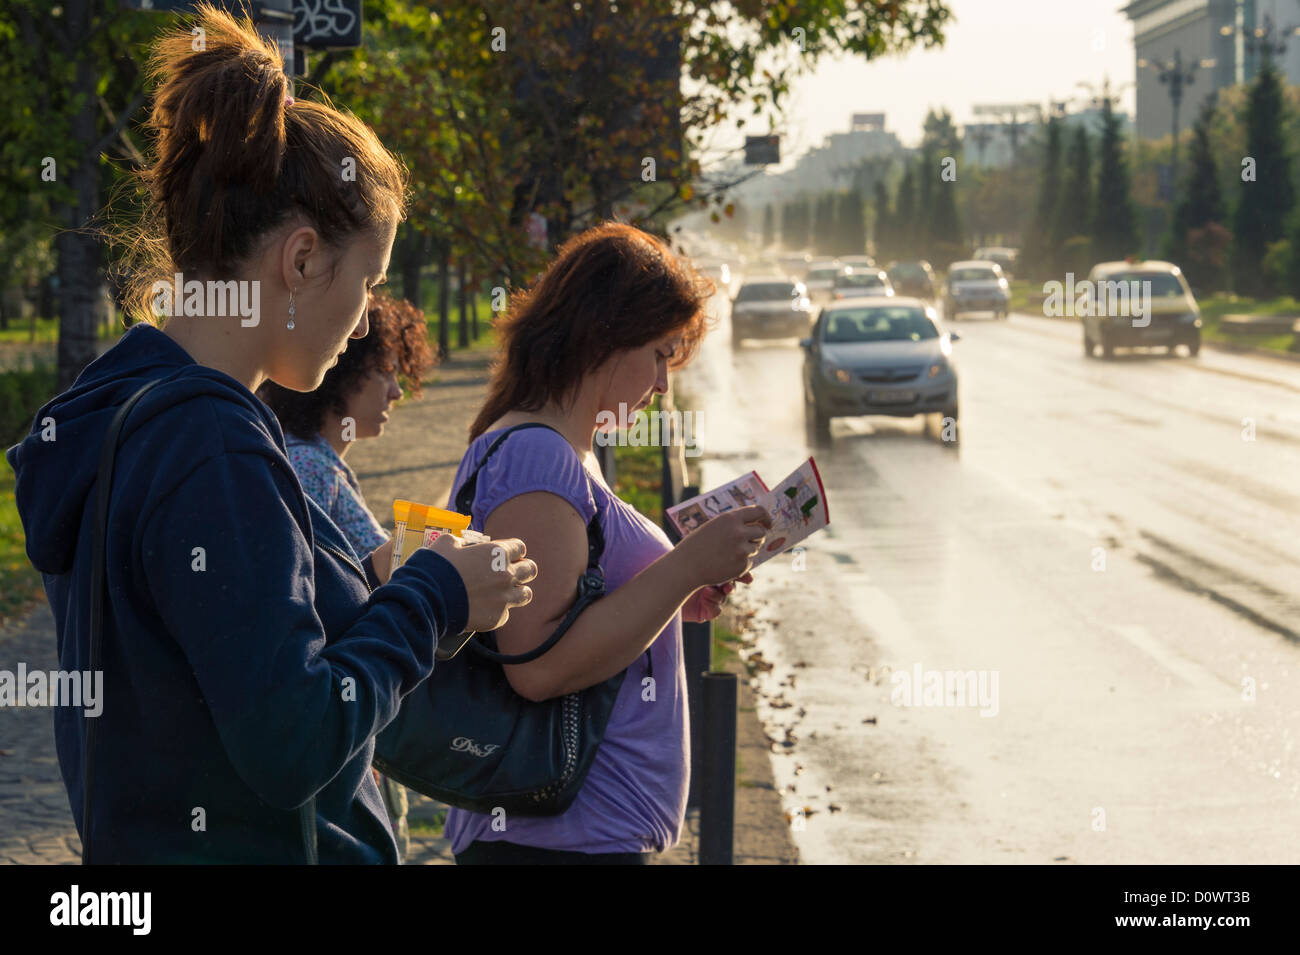 BUCHAREST, ROMANIA - September 29, 2012: People waiting to cross the Bulevardul Unirii in downtown Bucharest. Stock Photo